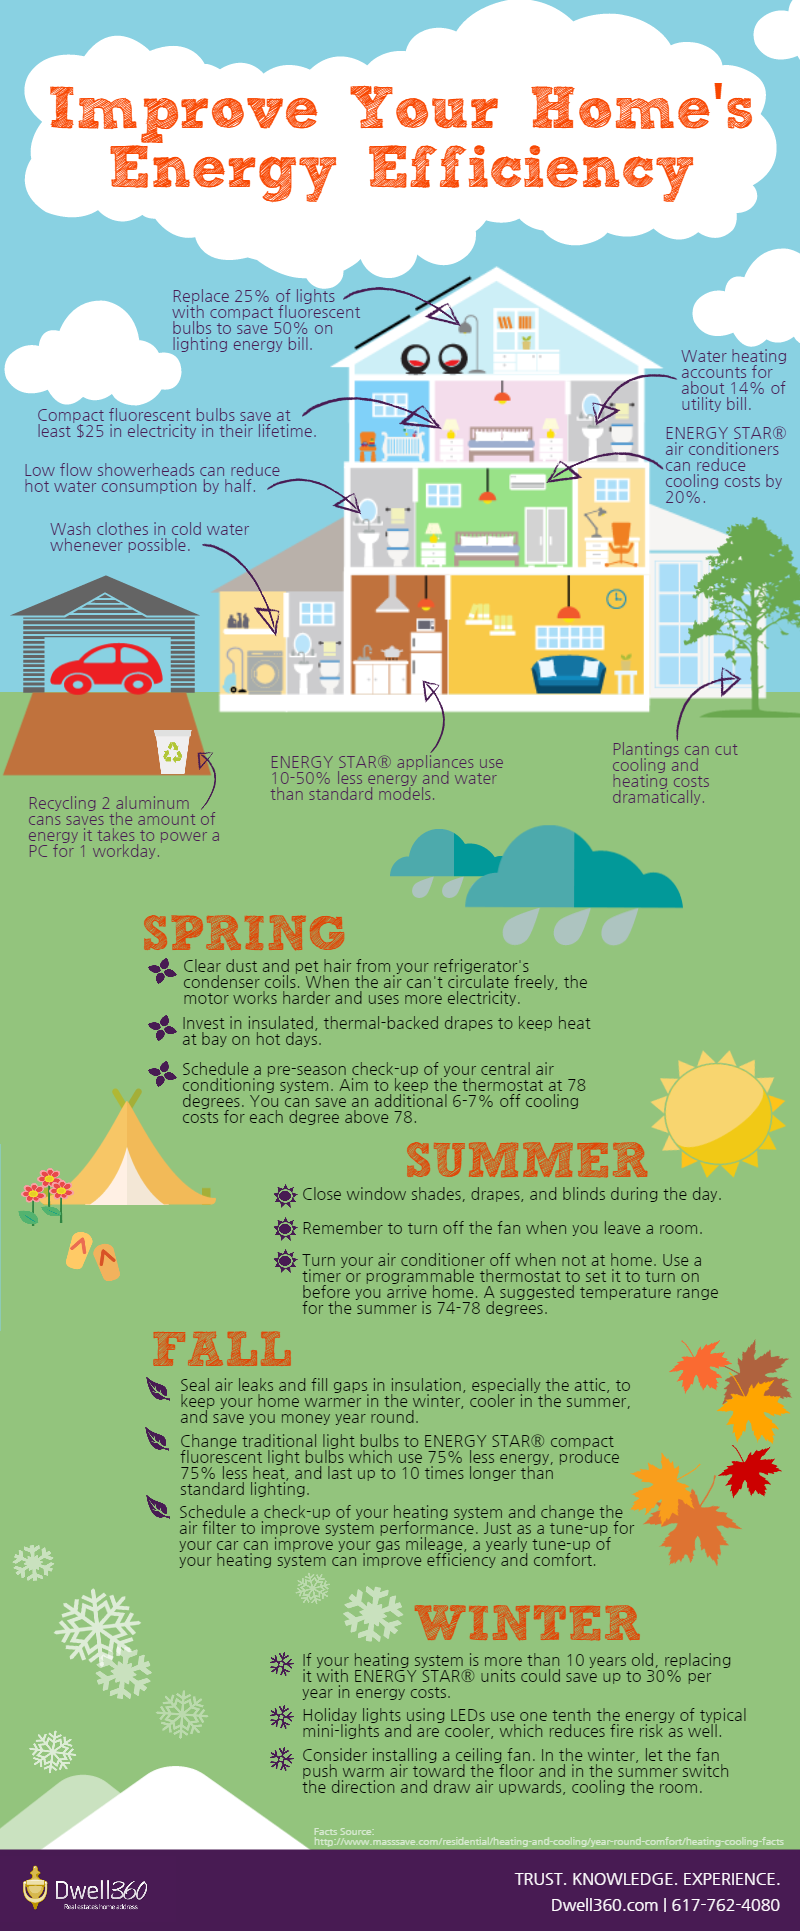 Dwell360 Makes An Infographic Featuring Information From Masssave About Impro With Images Energy Efficiency Infographic Improve Energy Efficiency How To Increase Energy